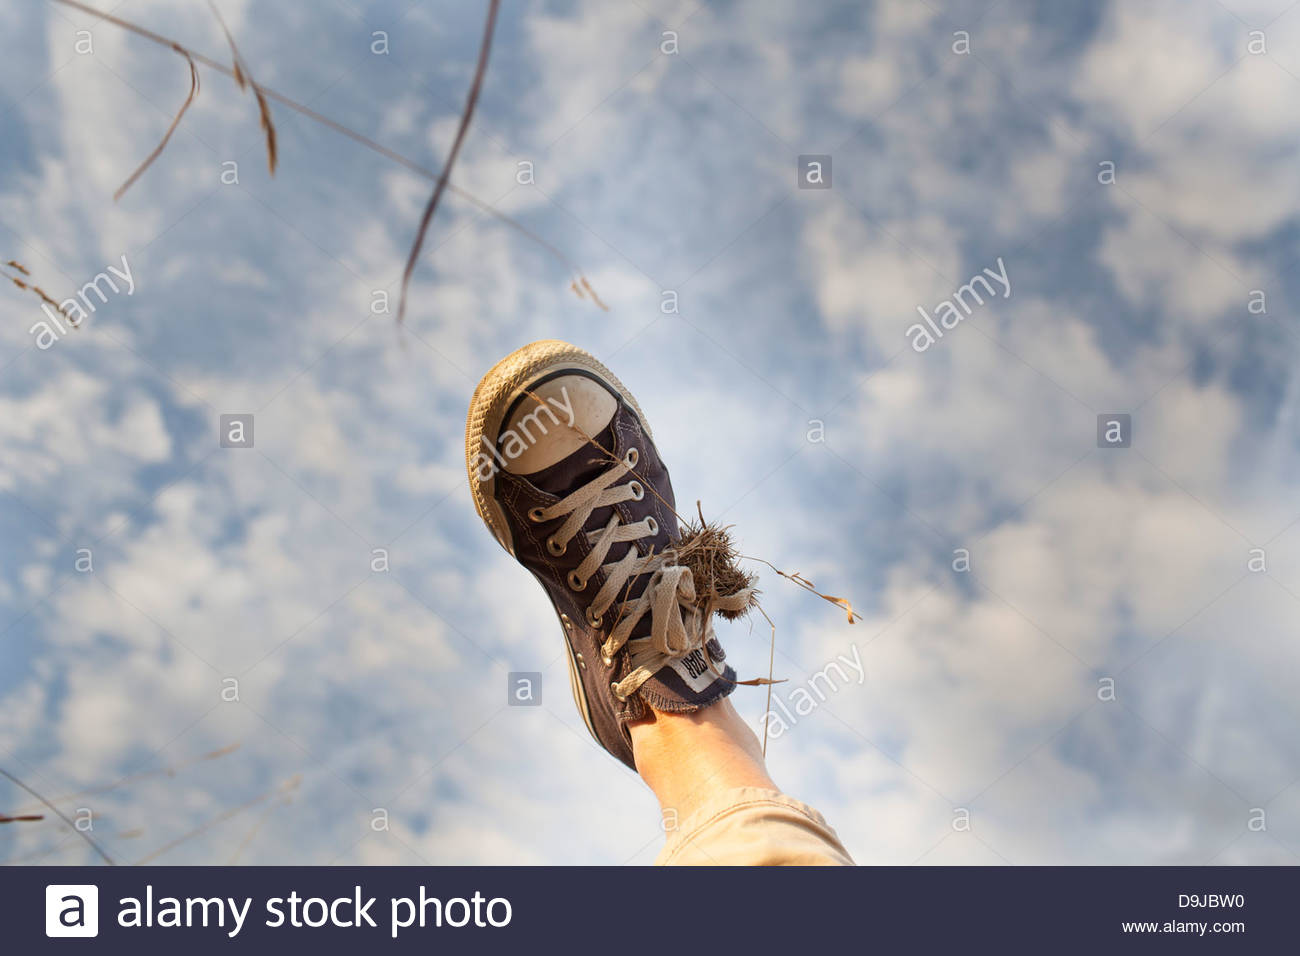 Human foot in the air - Stock Image